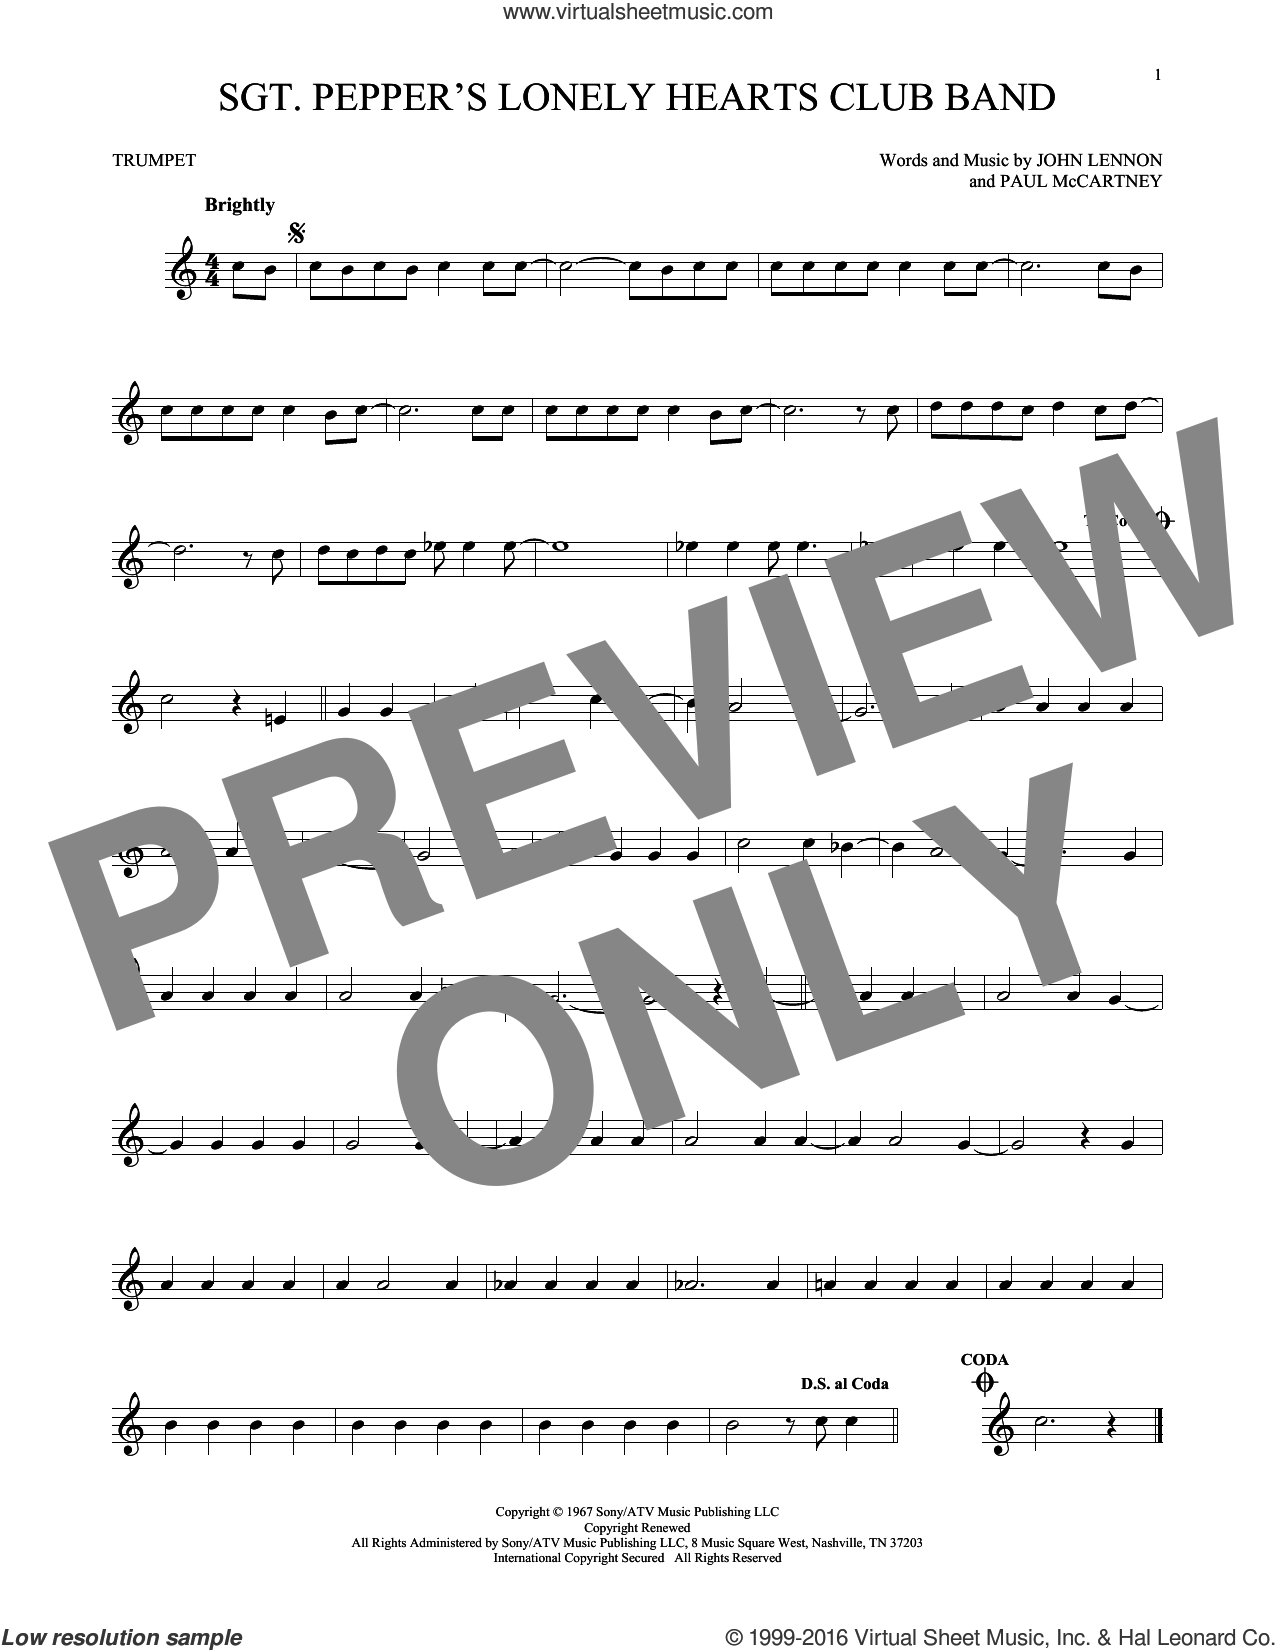 Sgt. Pepper's Lonely Hearts Club Band sheet music for trumpet solo by The Beatles, John Lennon and Paul McCartney, intermediate skill level